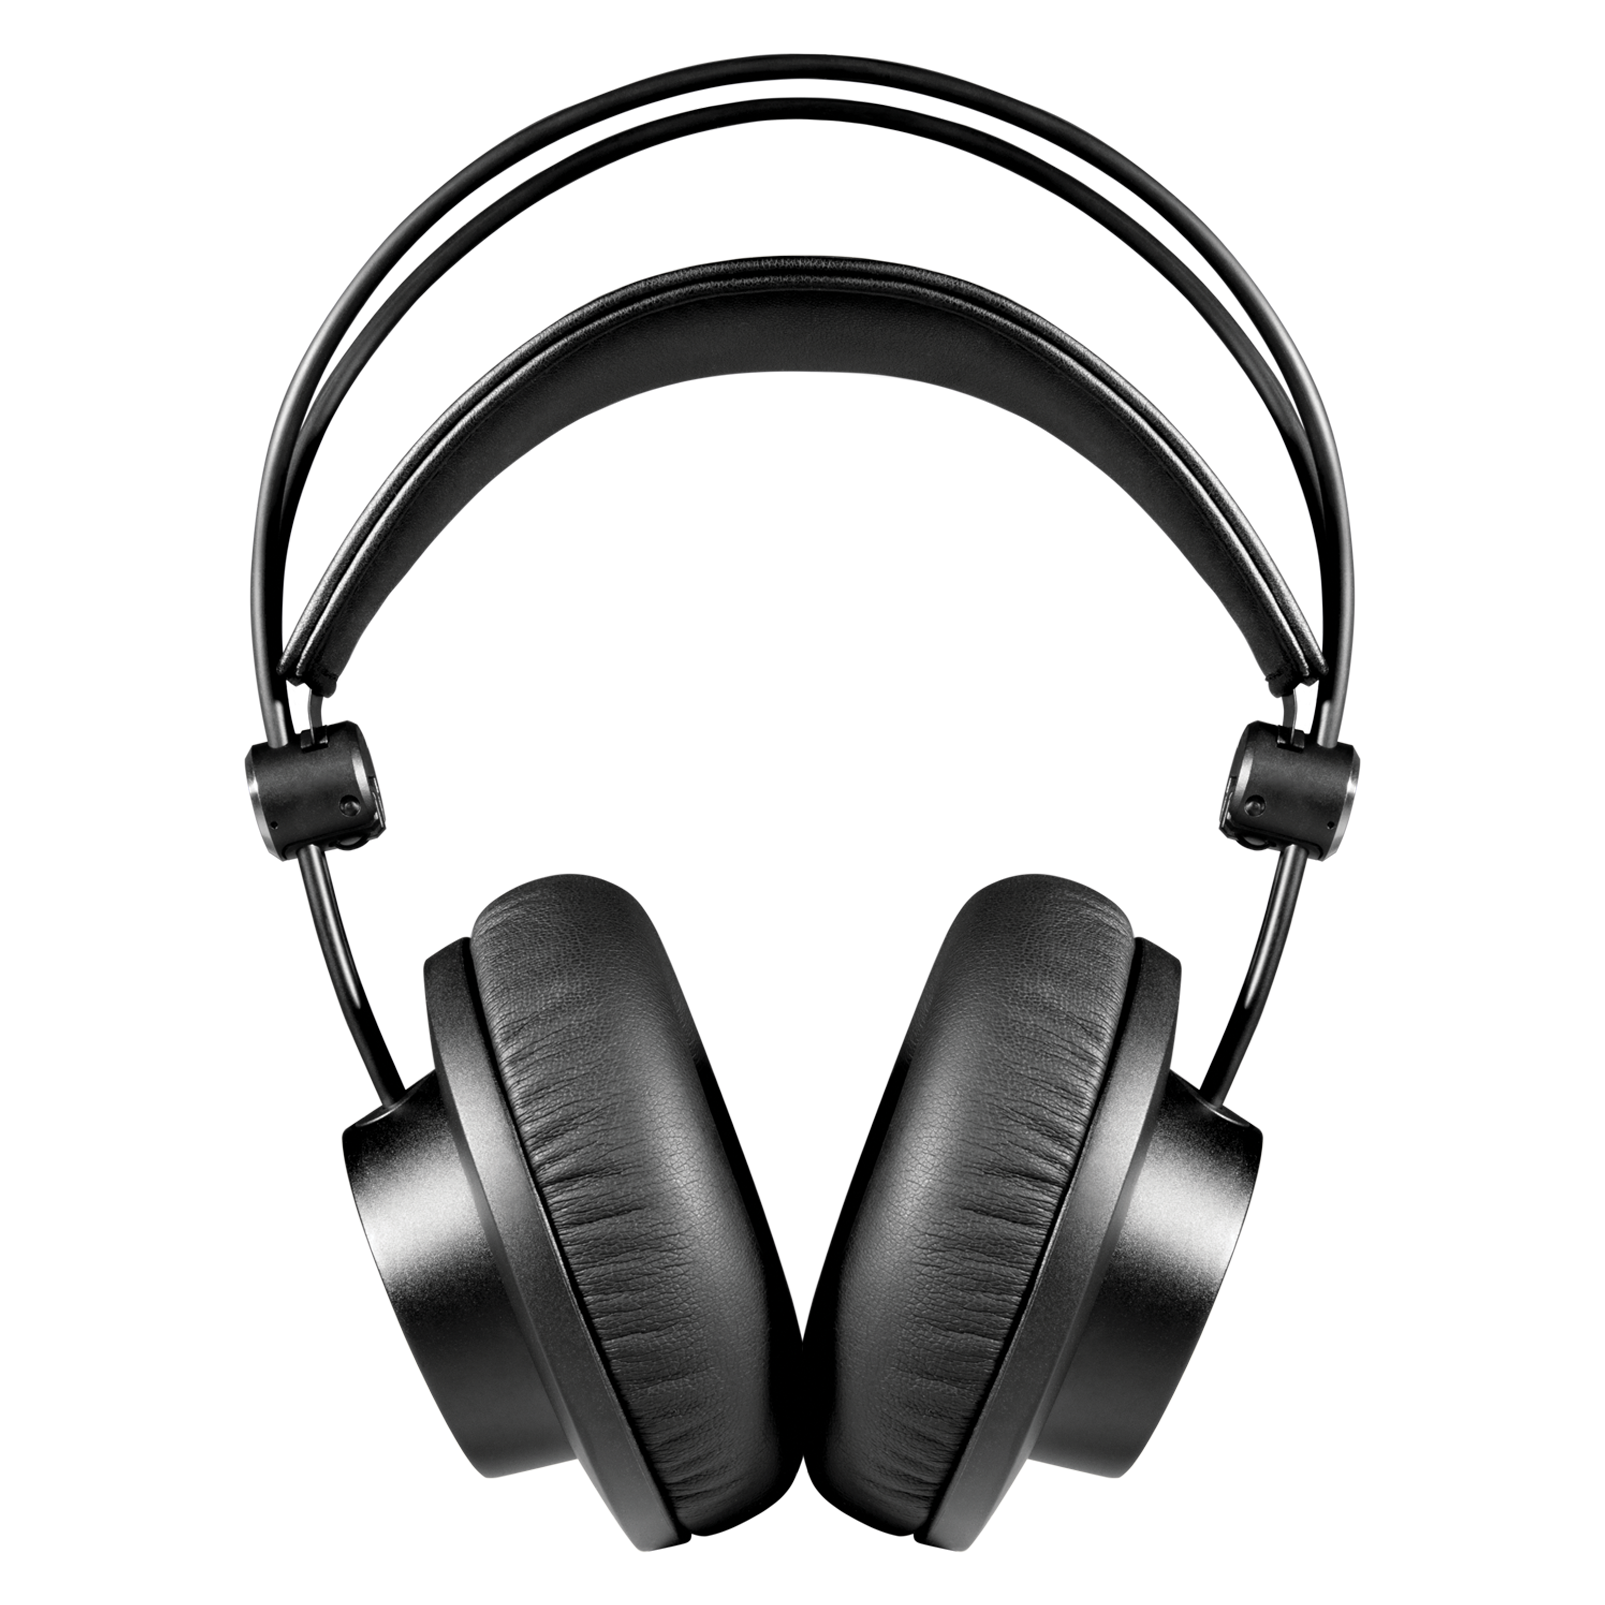 K245 - Black - Over-ear, open-back, foldable studio headphones - Front